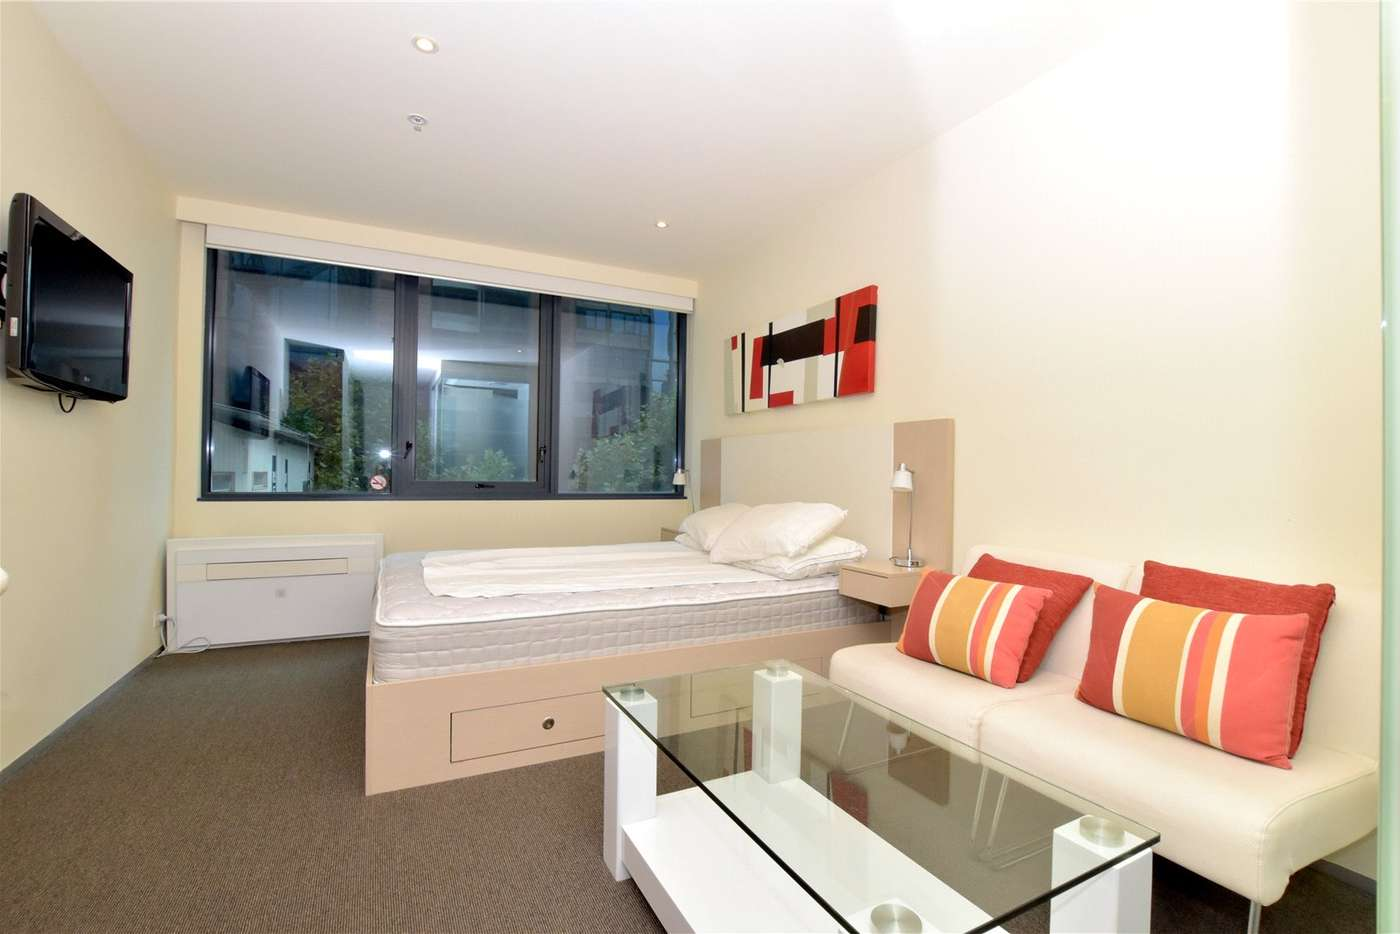 Main view of Homely studio listing, 401/181 ABeckett Street, Melbourne VIC 3000